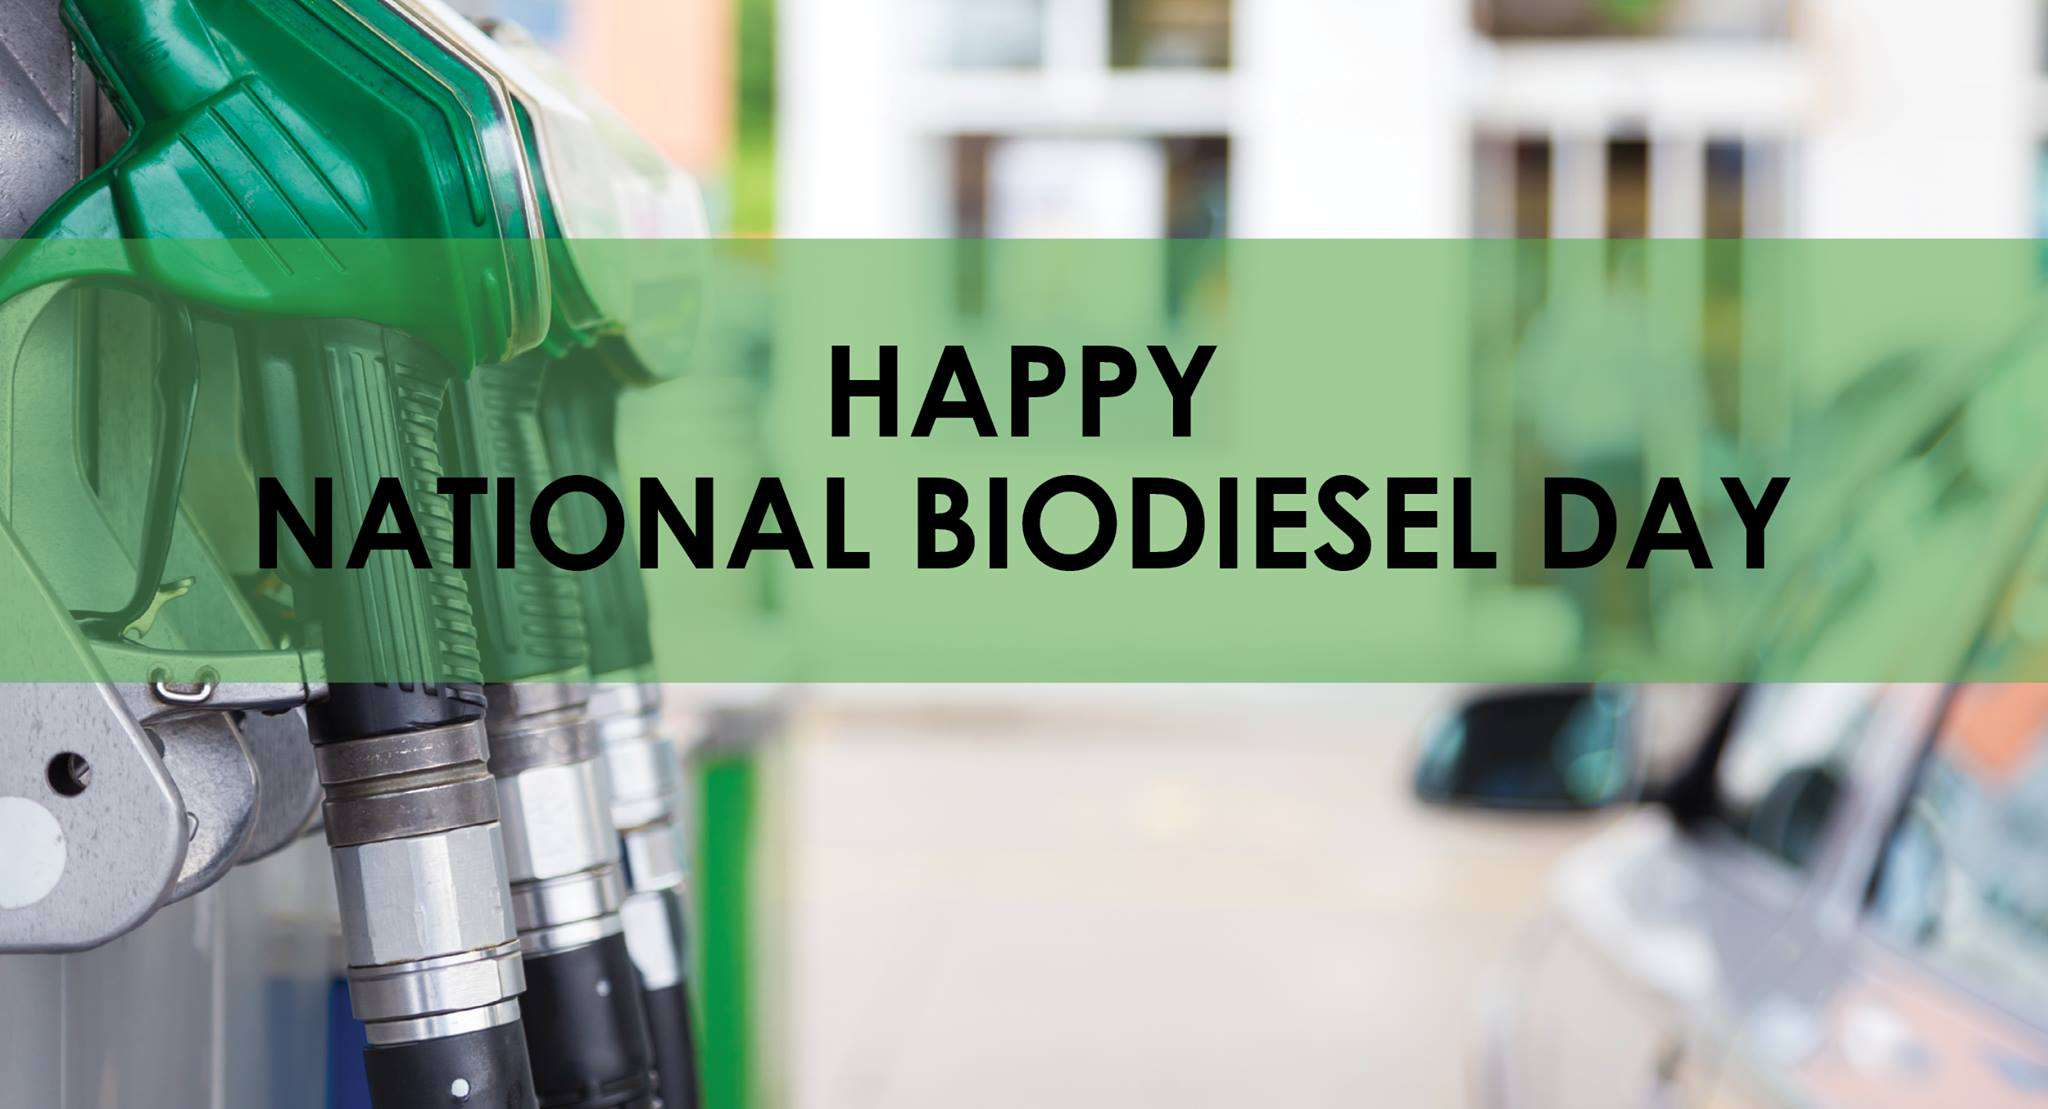 National Biodiesel Day Wishes Photos